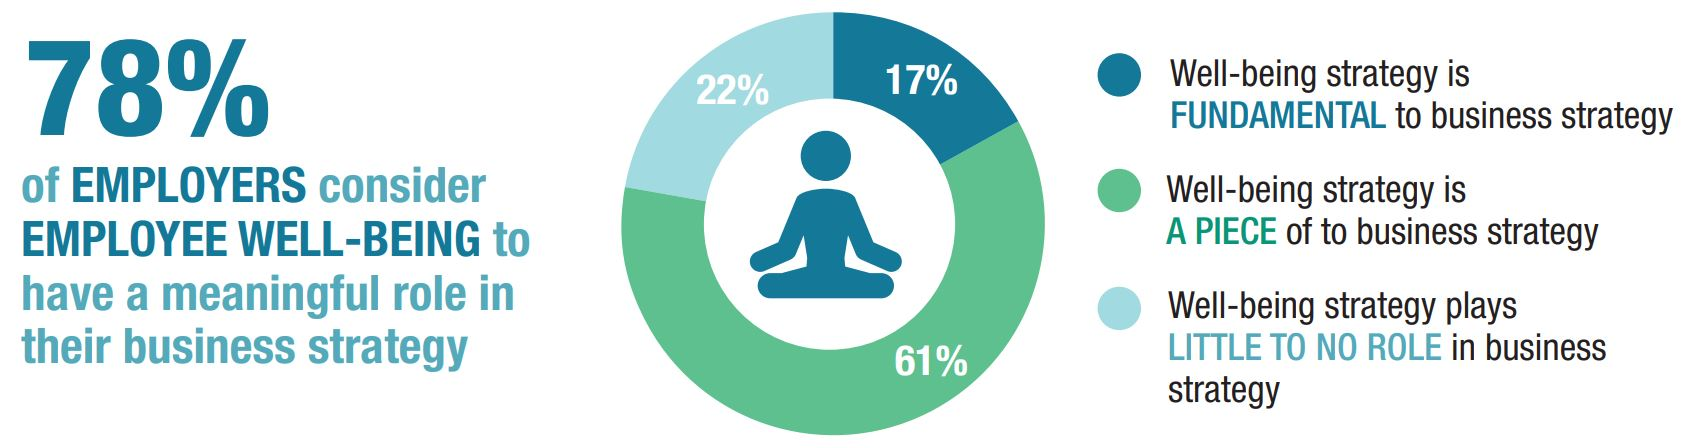 78% of employers consider employee well-being to have a meaningful role in their business strategy